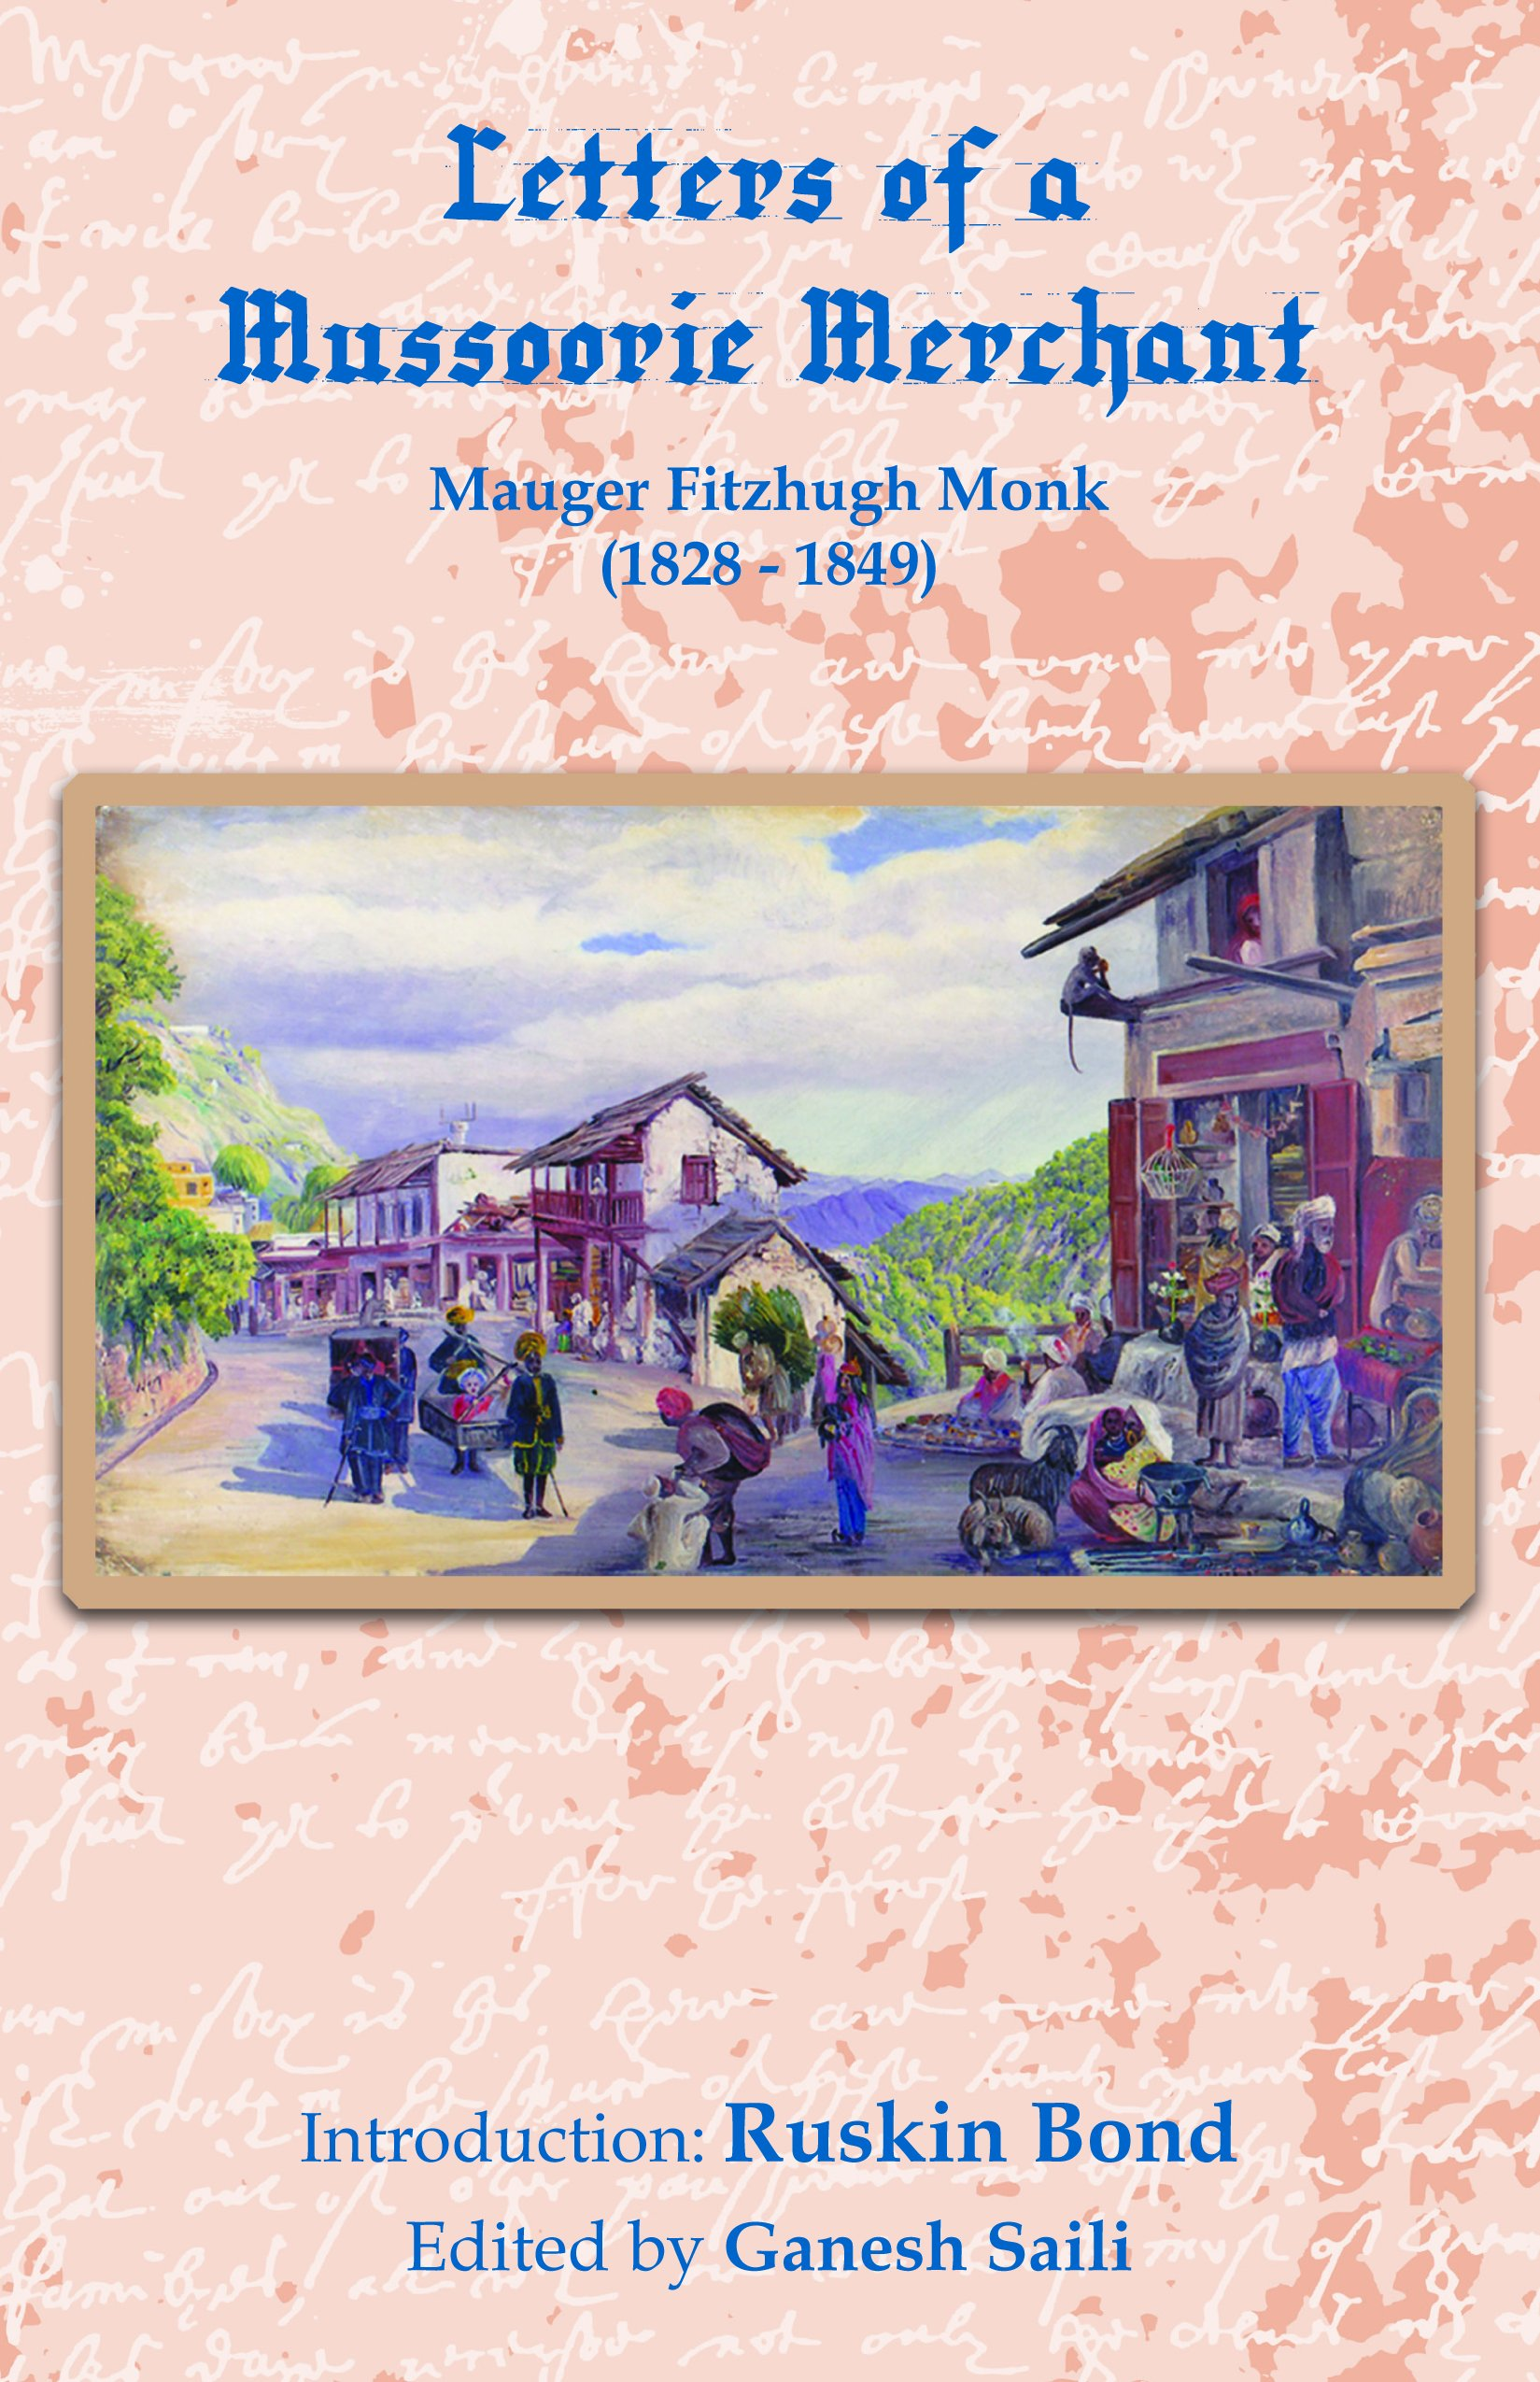 Letters of a Mussoorie Merchant